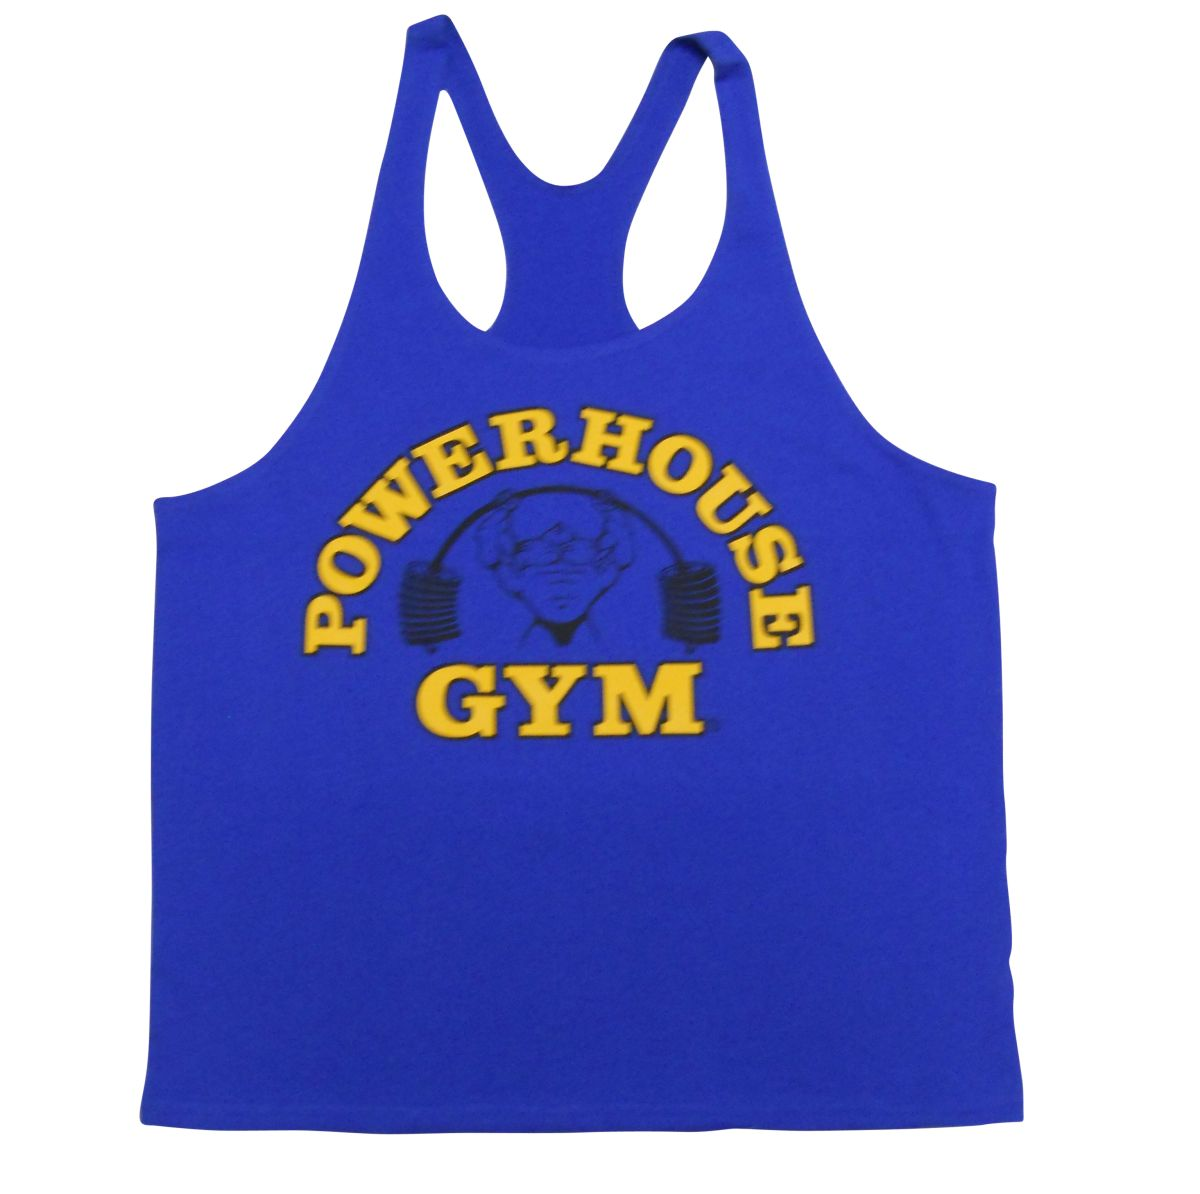 powerhouse-gym-stringer-tank-top-7